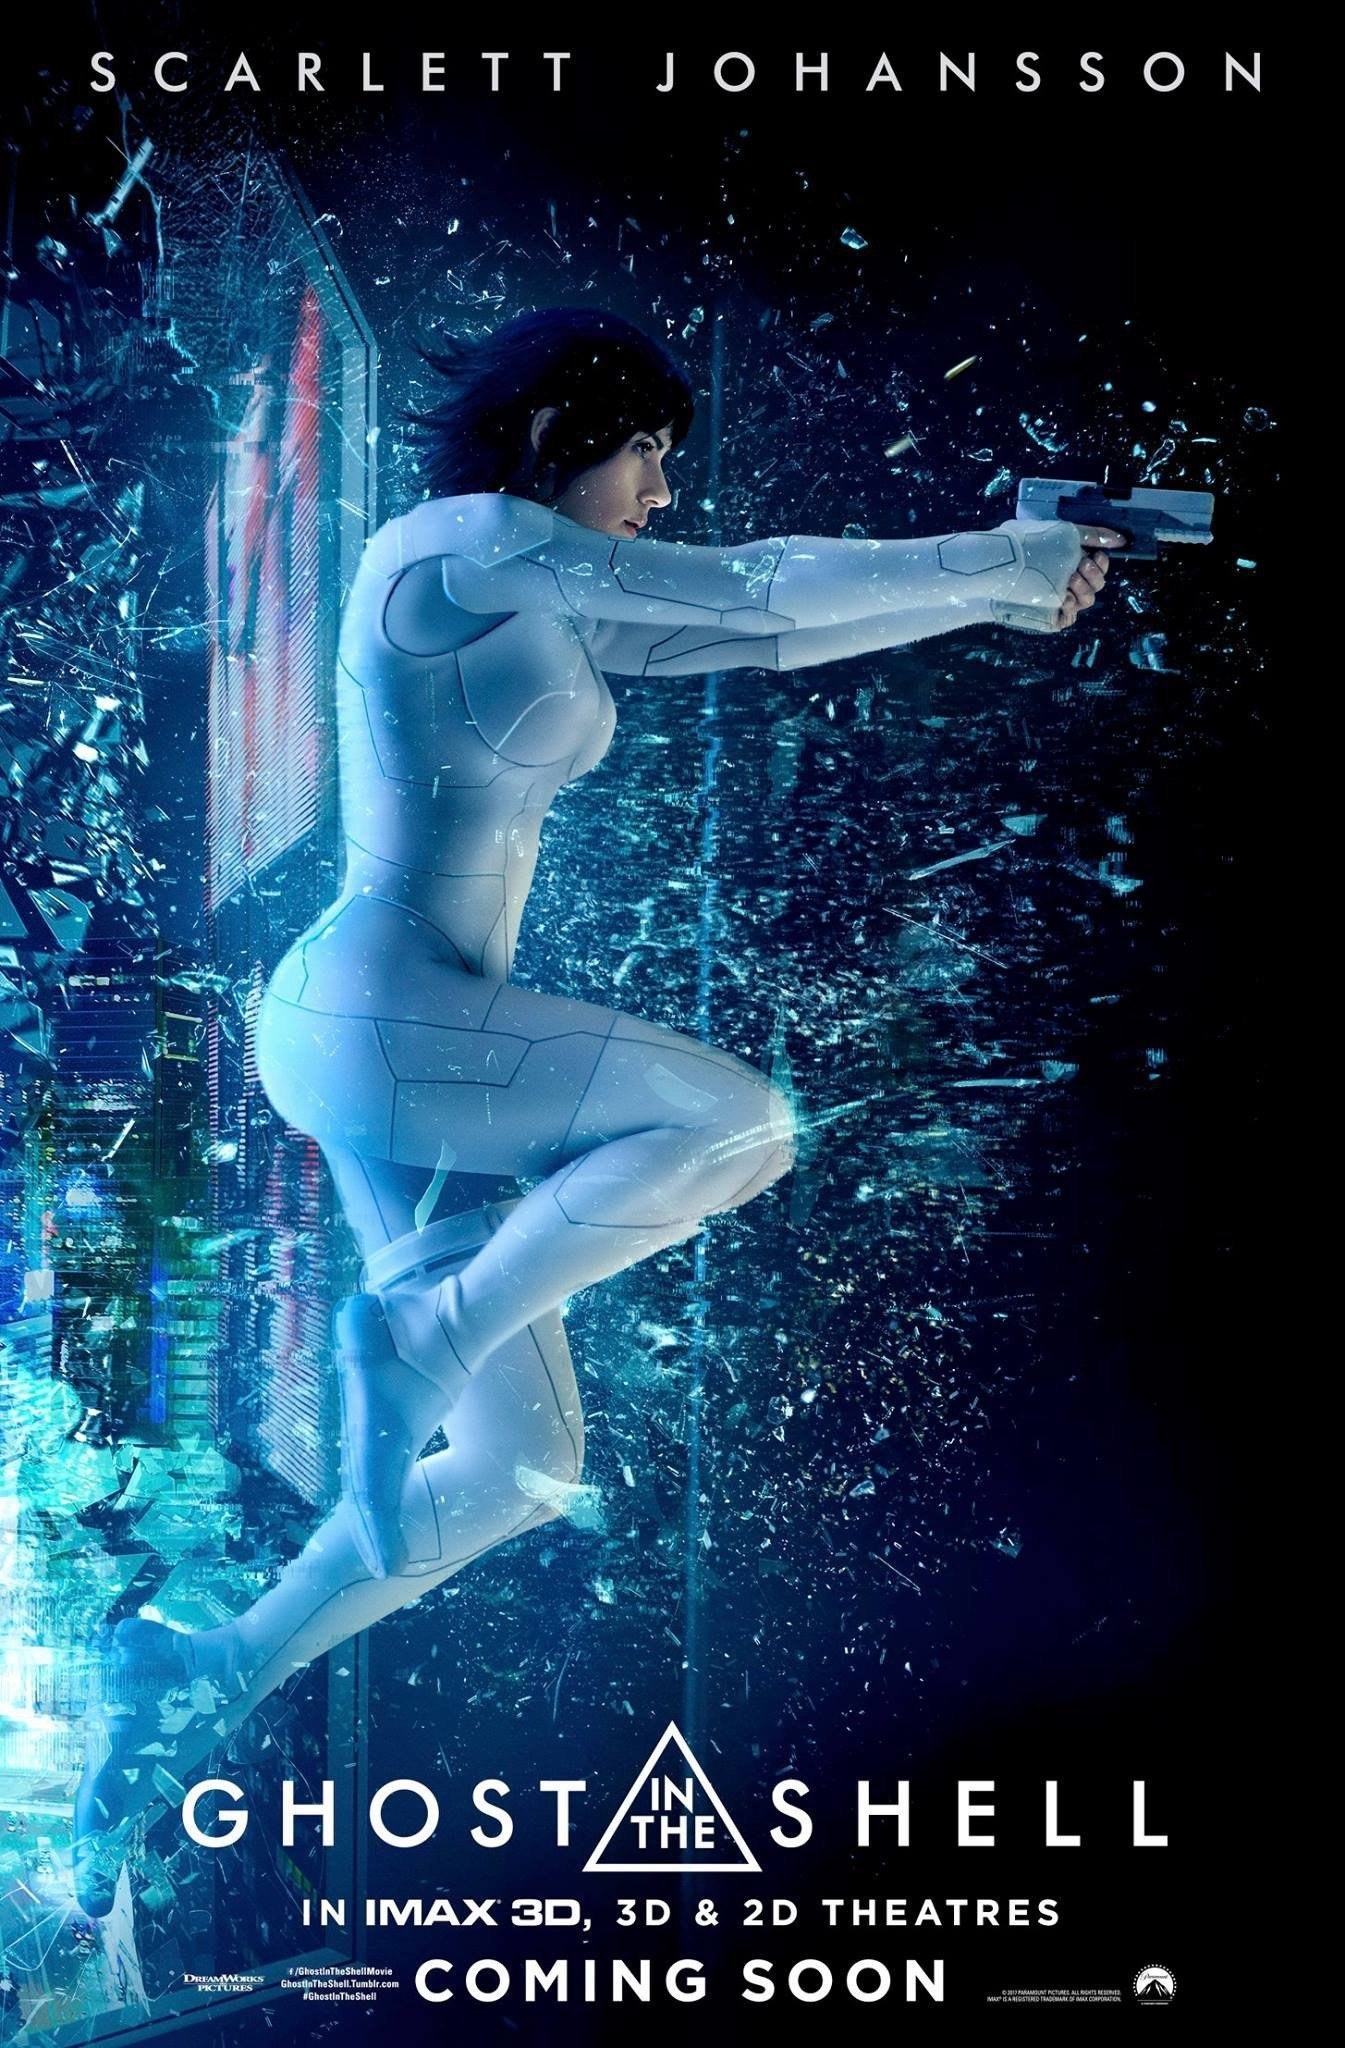 Poster du film Ghost in the Shell avec Scarlett Johansson traversant une vitre avec des flingues à la main